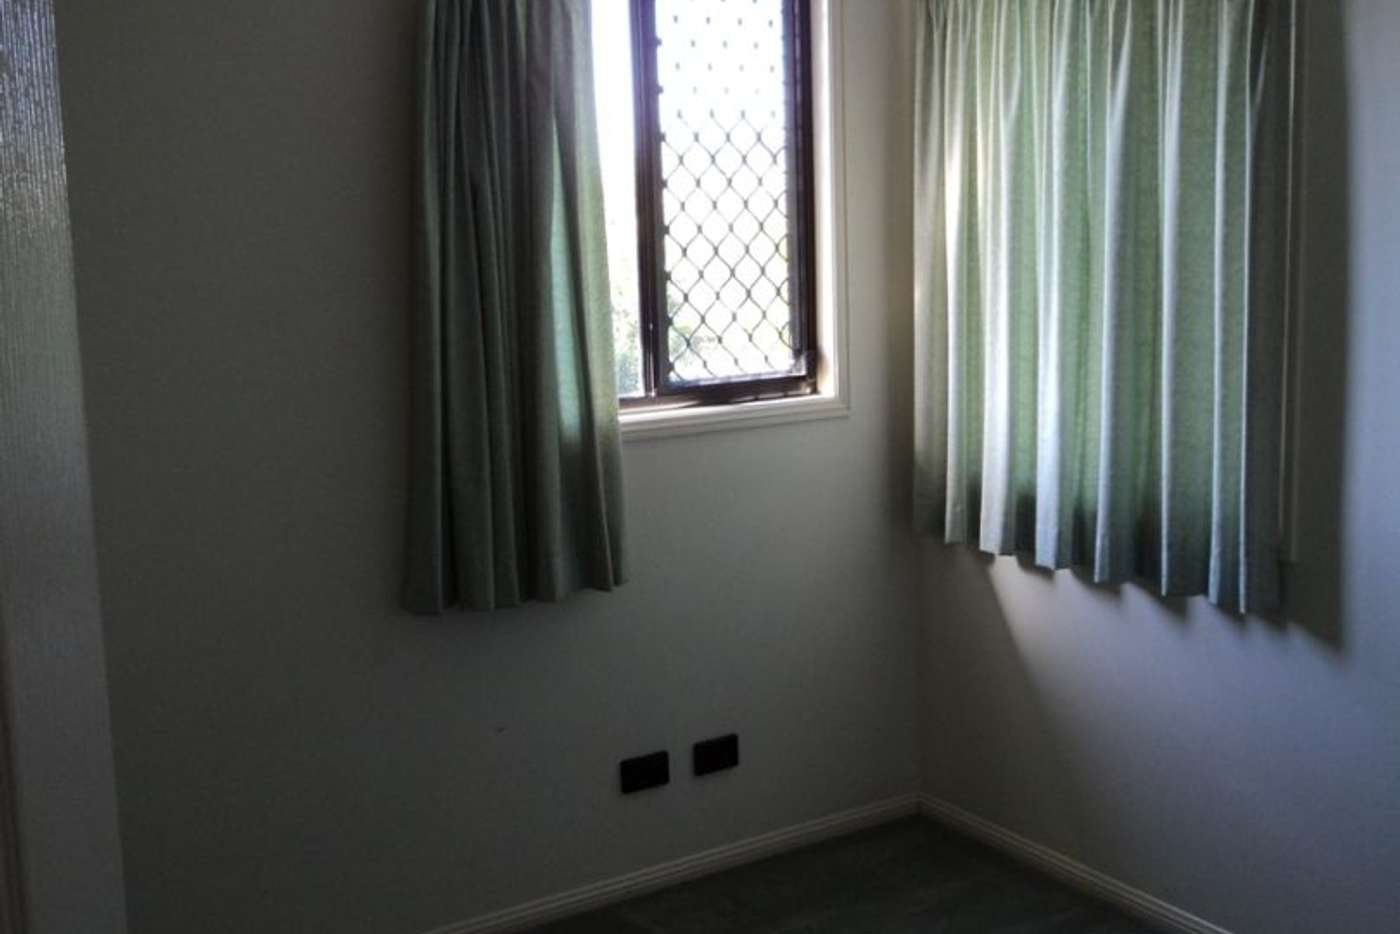 Sixth view of Homely unit listing, 2/31 Latham Street, Chermside QLD 4032